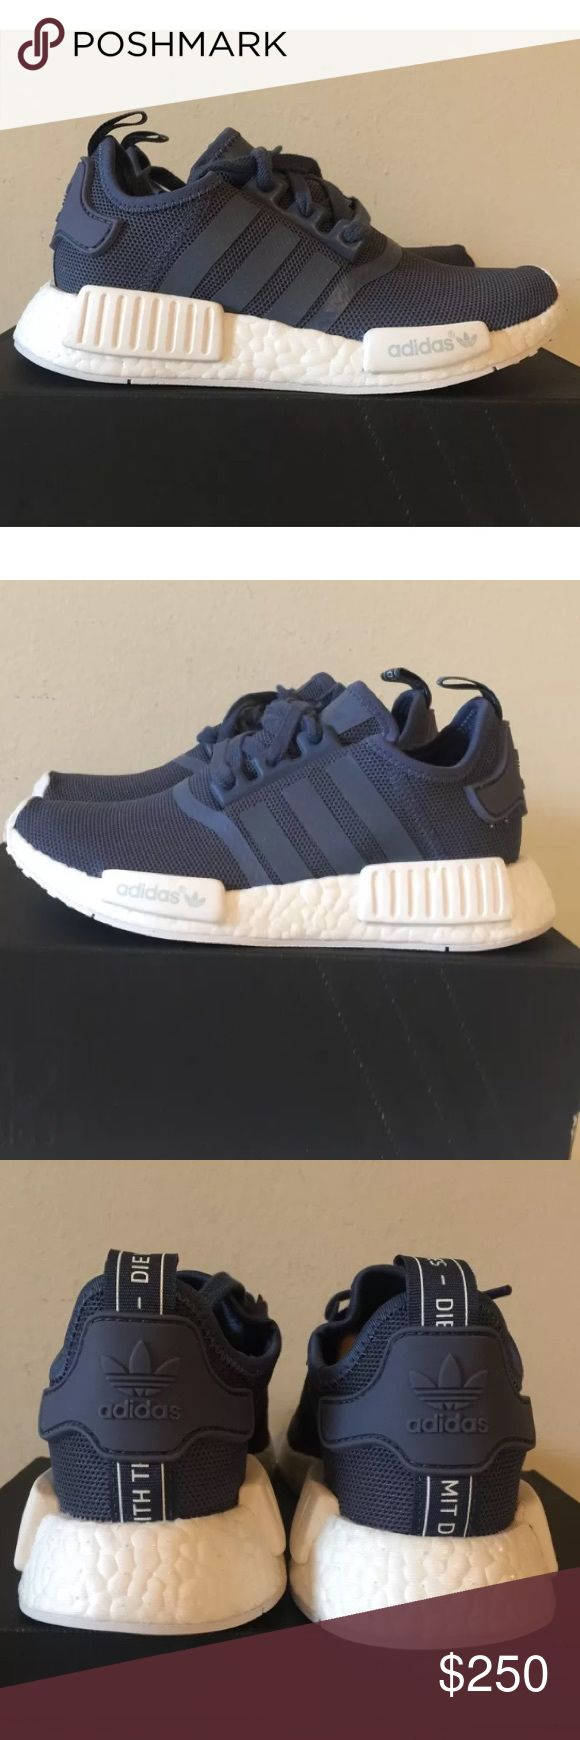 trfvxh 1000+ ideas about Nmd R1 on Pinterest | Adidas nmd, Adidas nmd r1